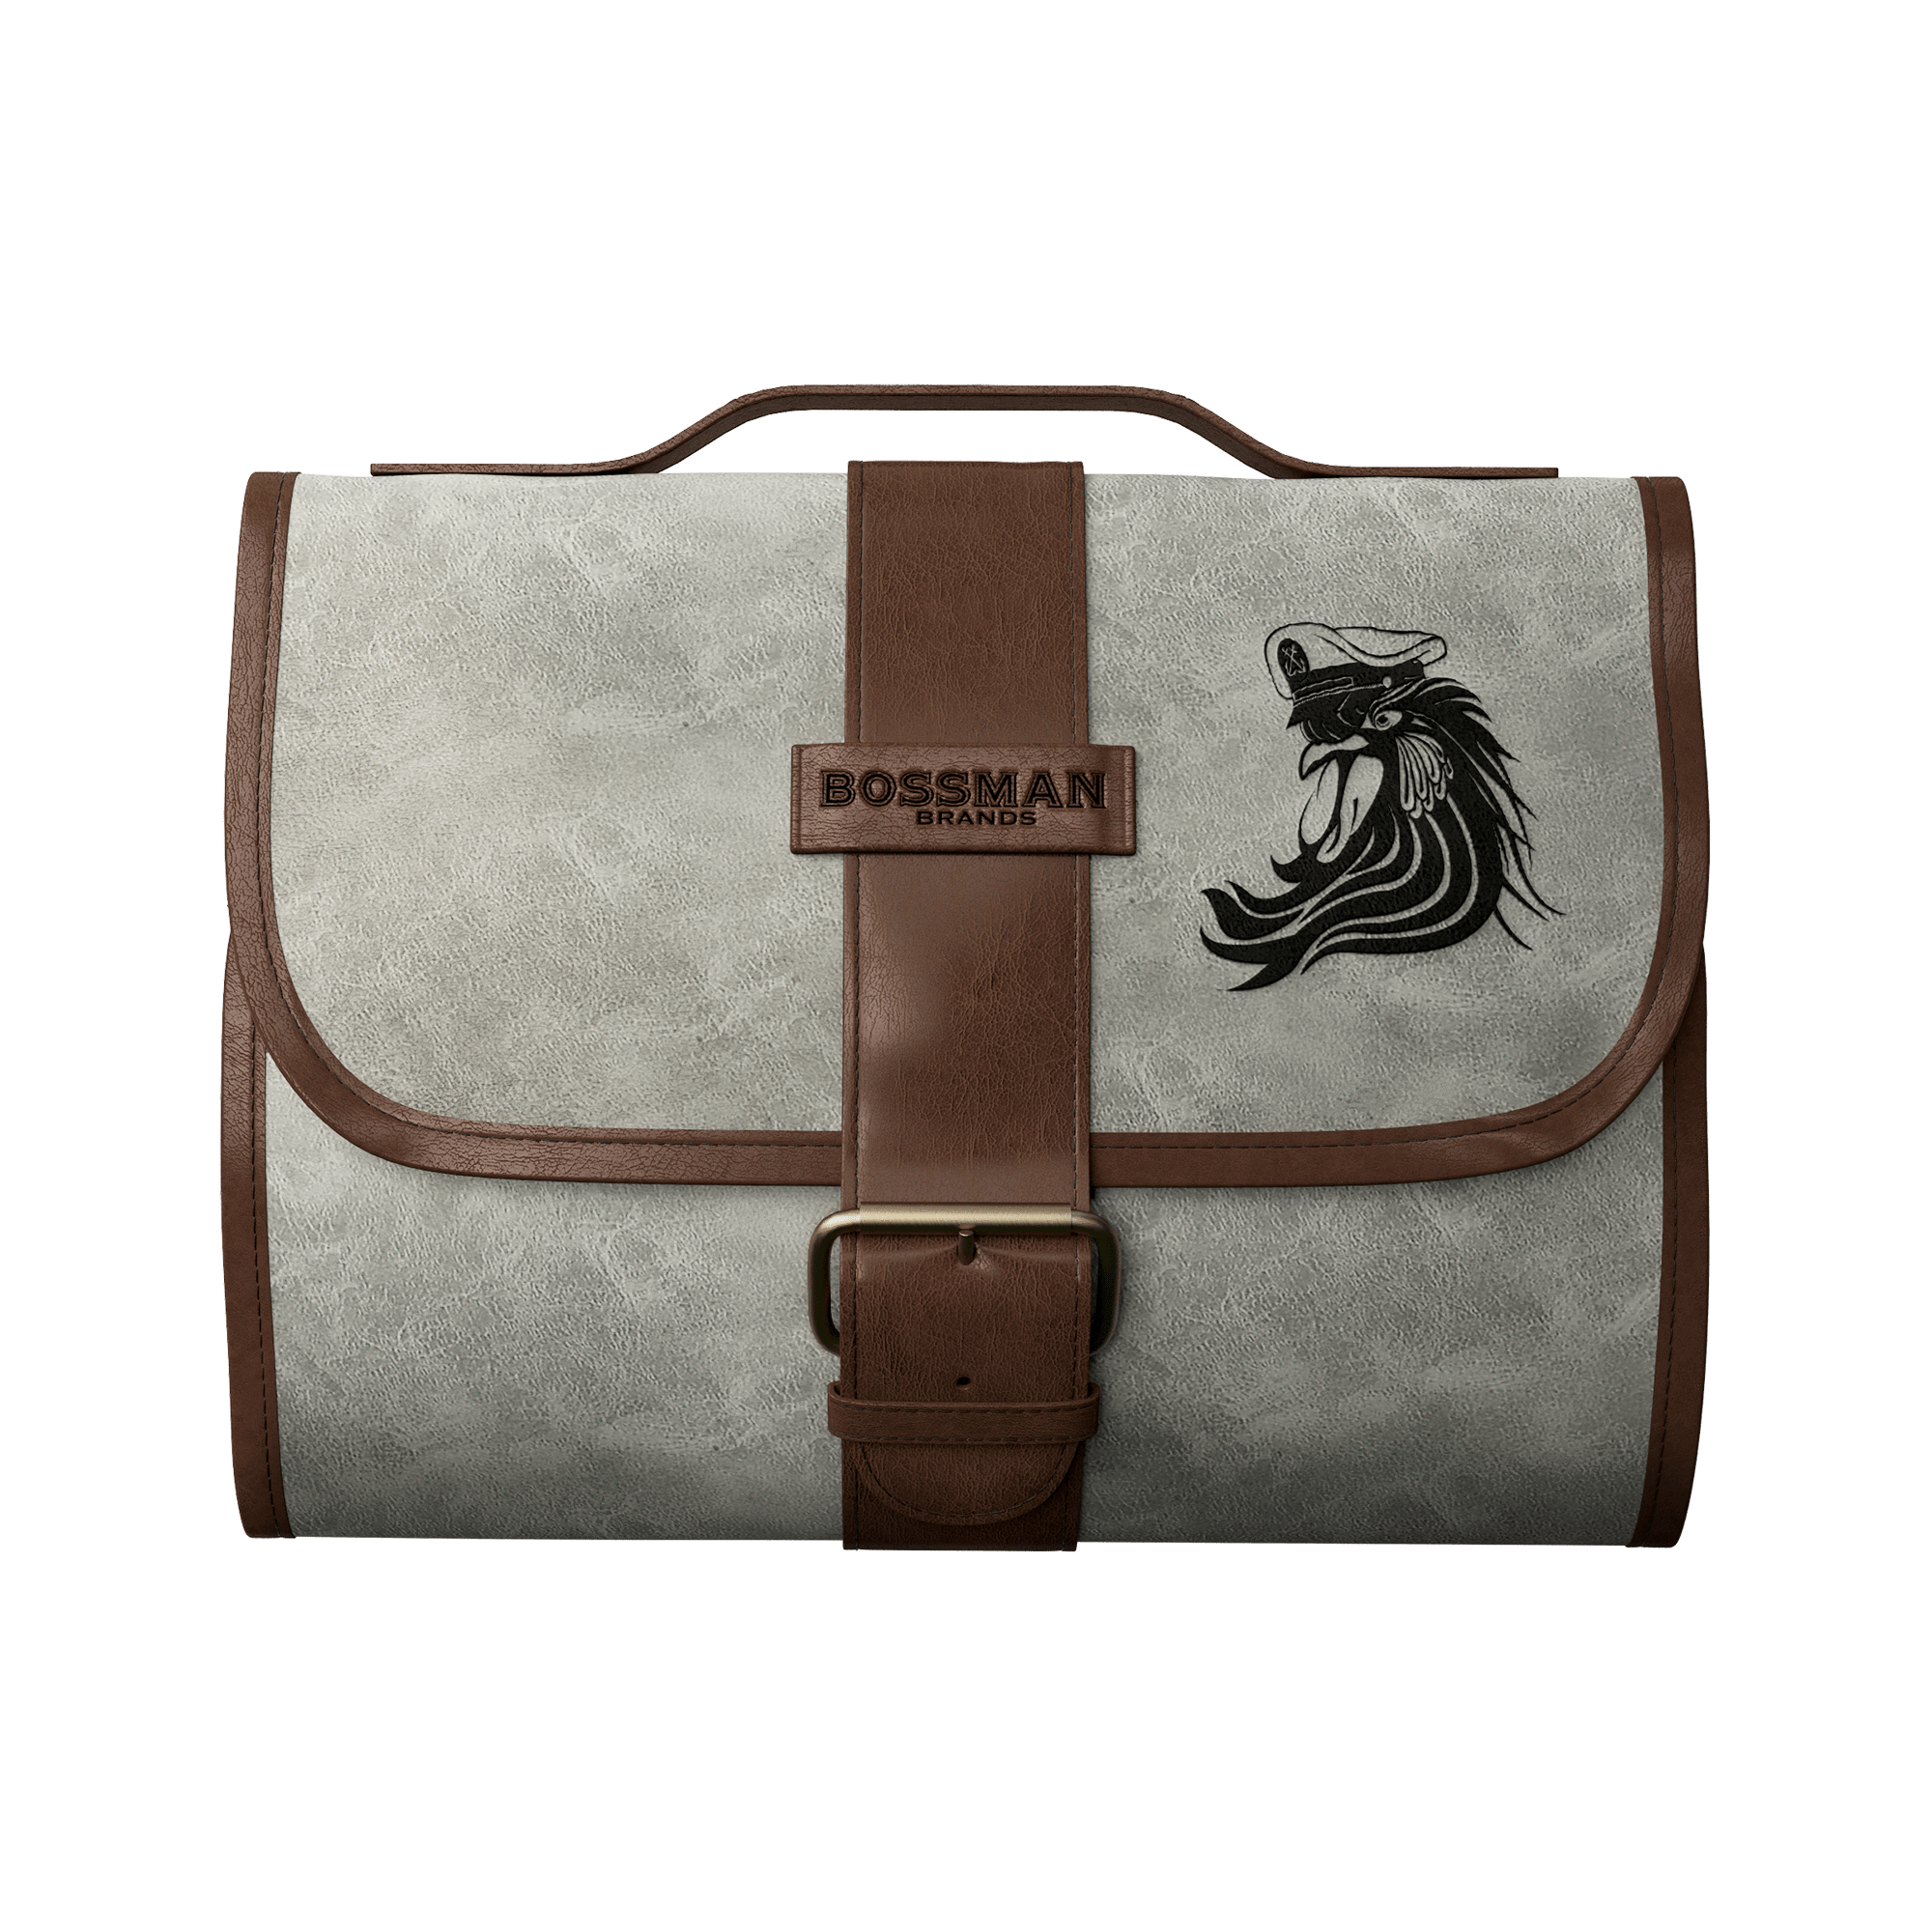 Bossman Hanging Toiletry Leather Bag